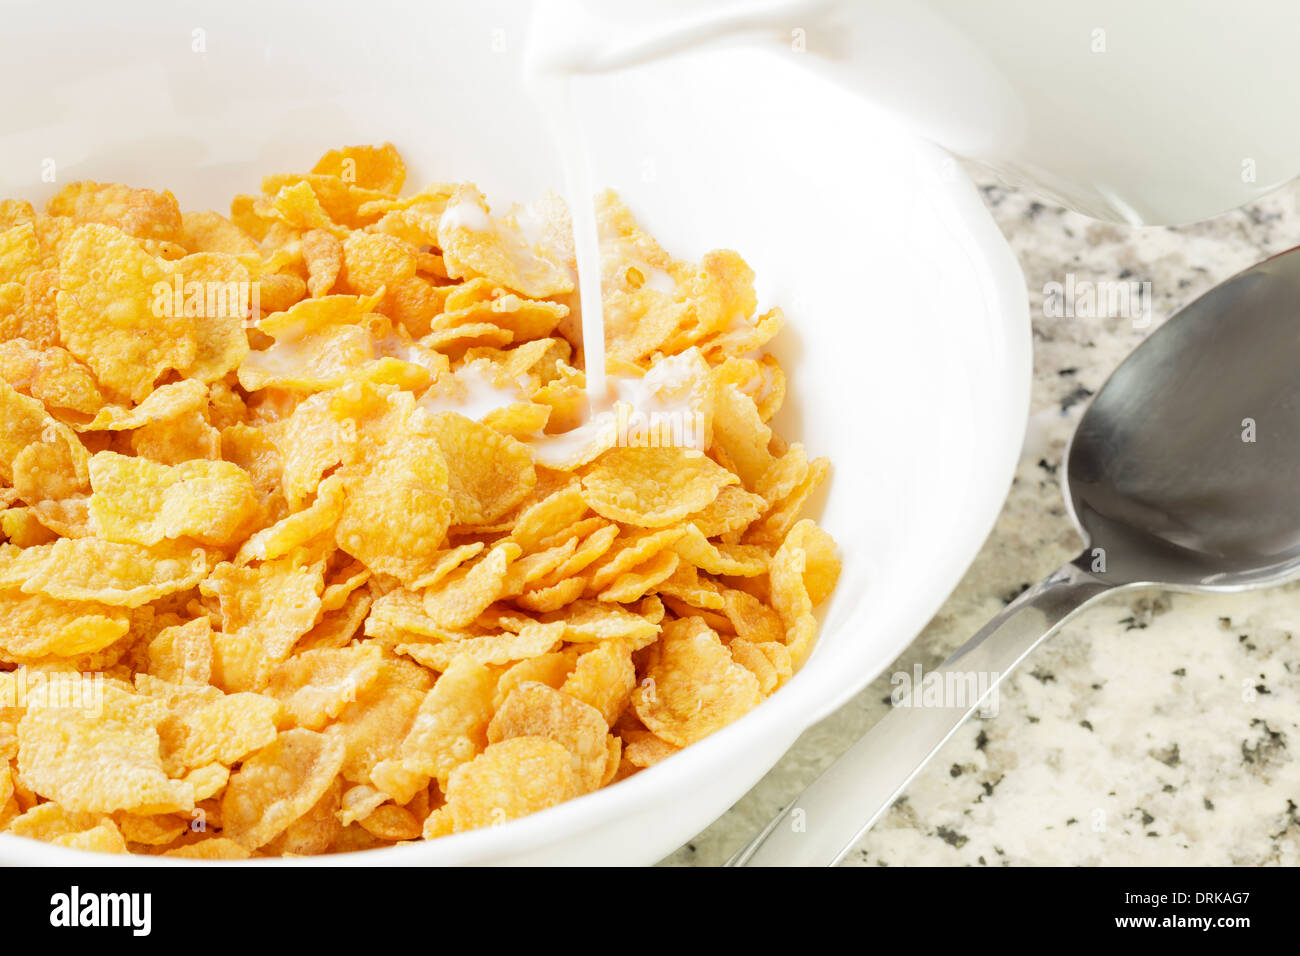 Cornflakes with milk being poured Stock Photo